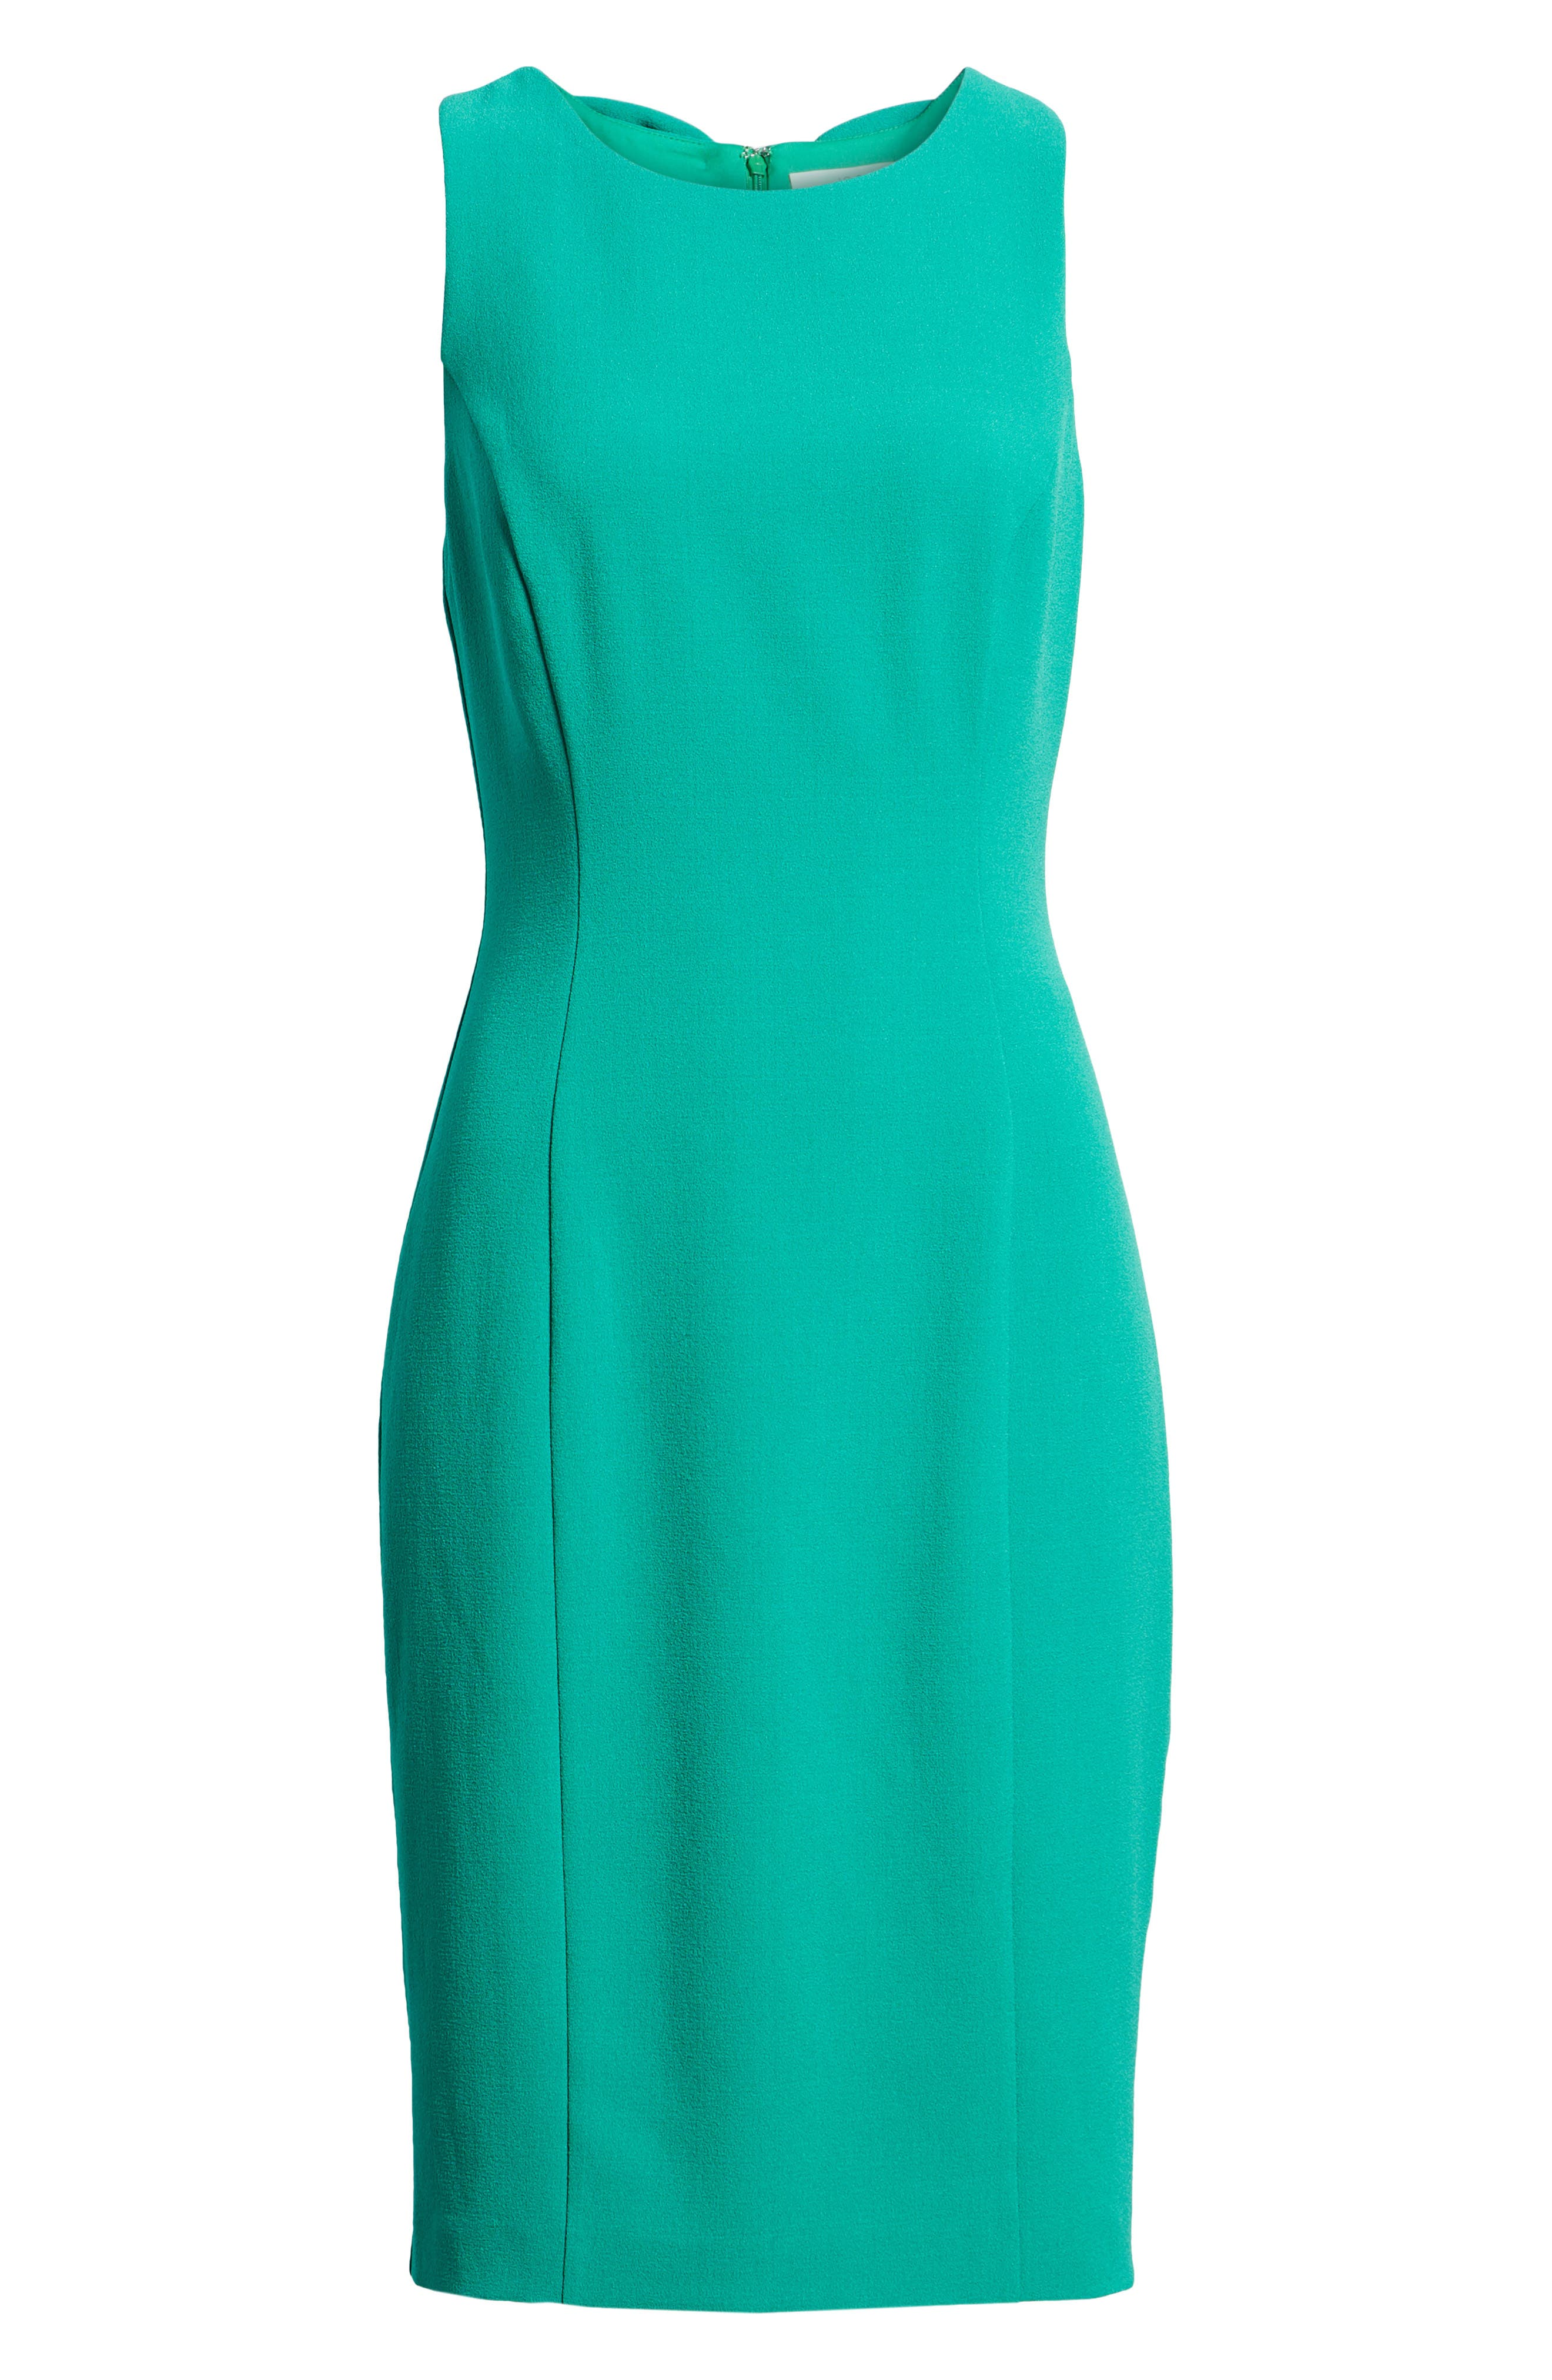 Bow Back Sheath Dress,                             Alternate thumbnail 7, color,                             Green Parakeet